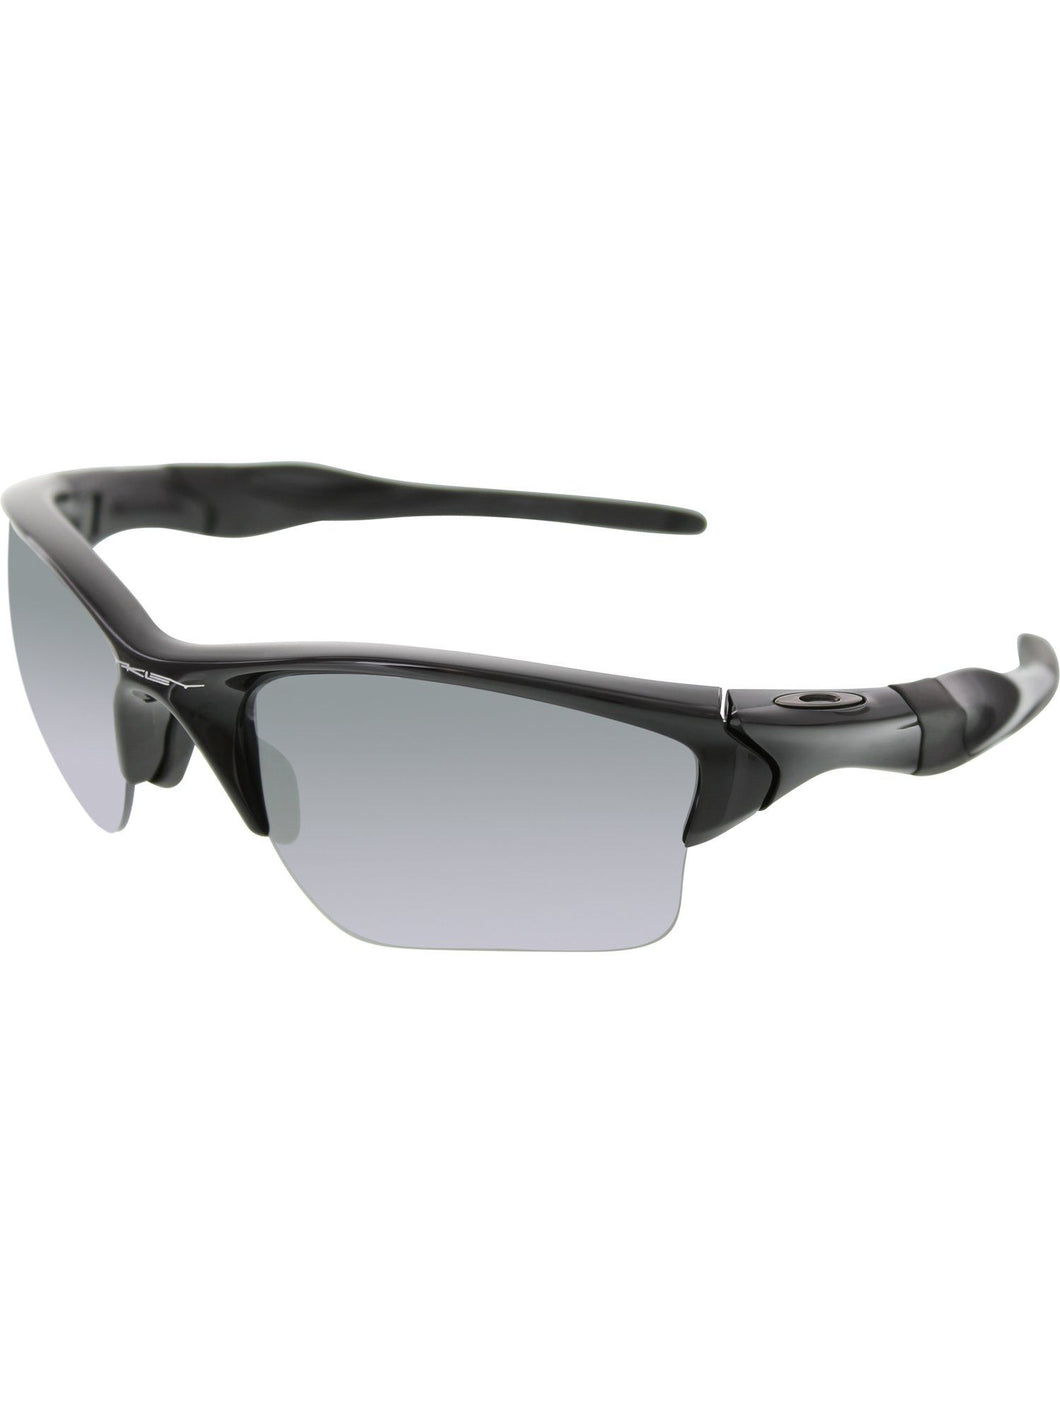 Oakley Mens OO9154-05 Polarized Half Jacket 2.0 XL Polished Black Sunglasses - Watchbatteries